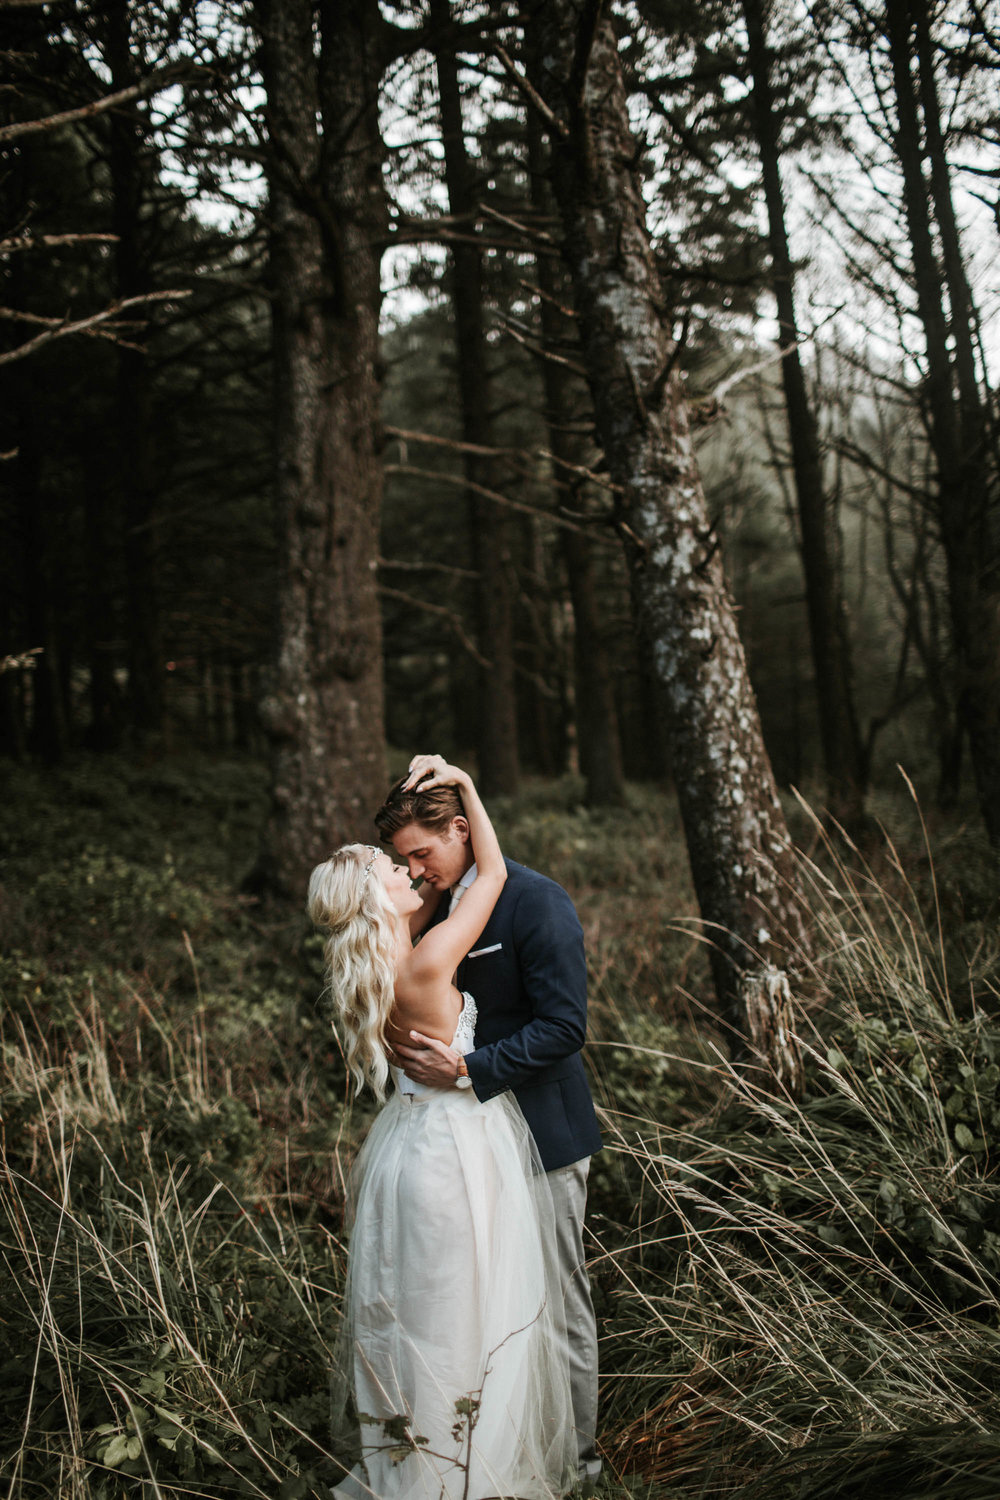 cannon_beach_elopement_christinemariephoto-122.jpg